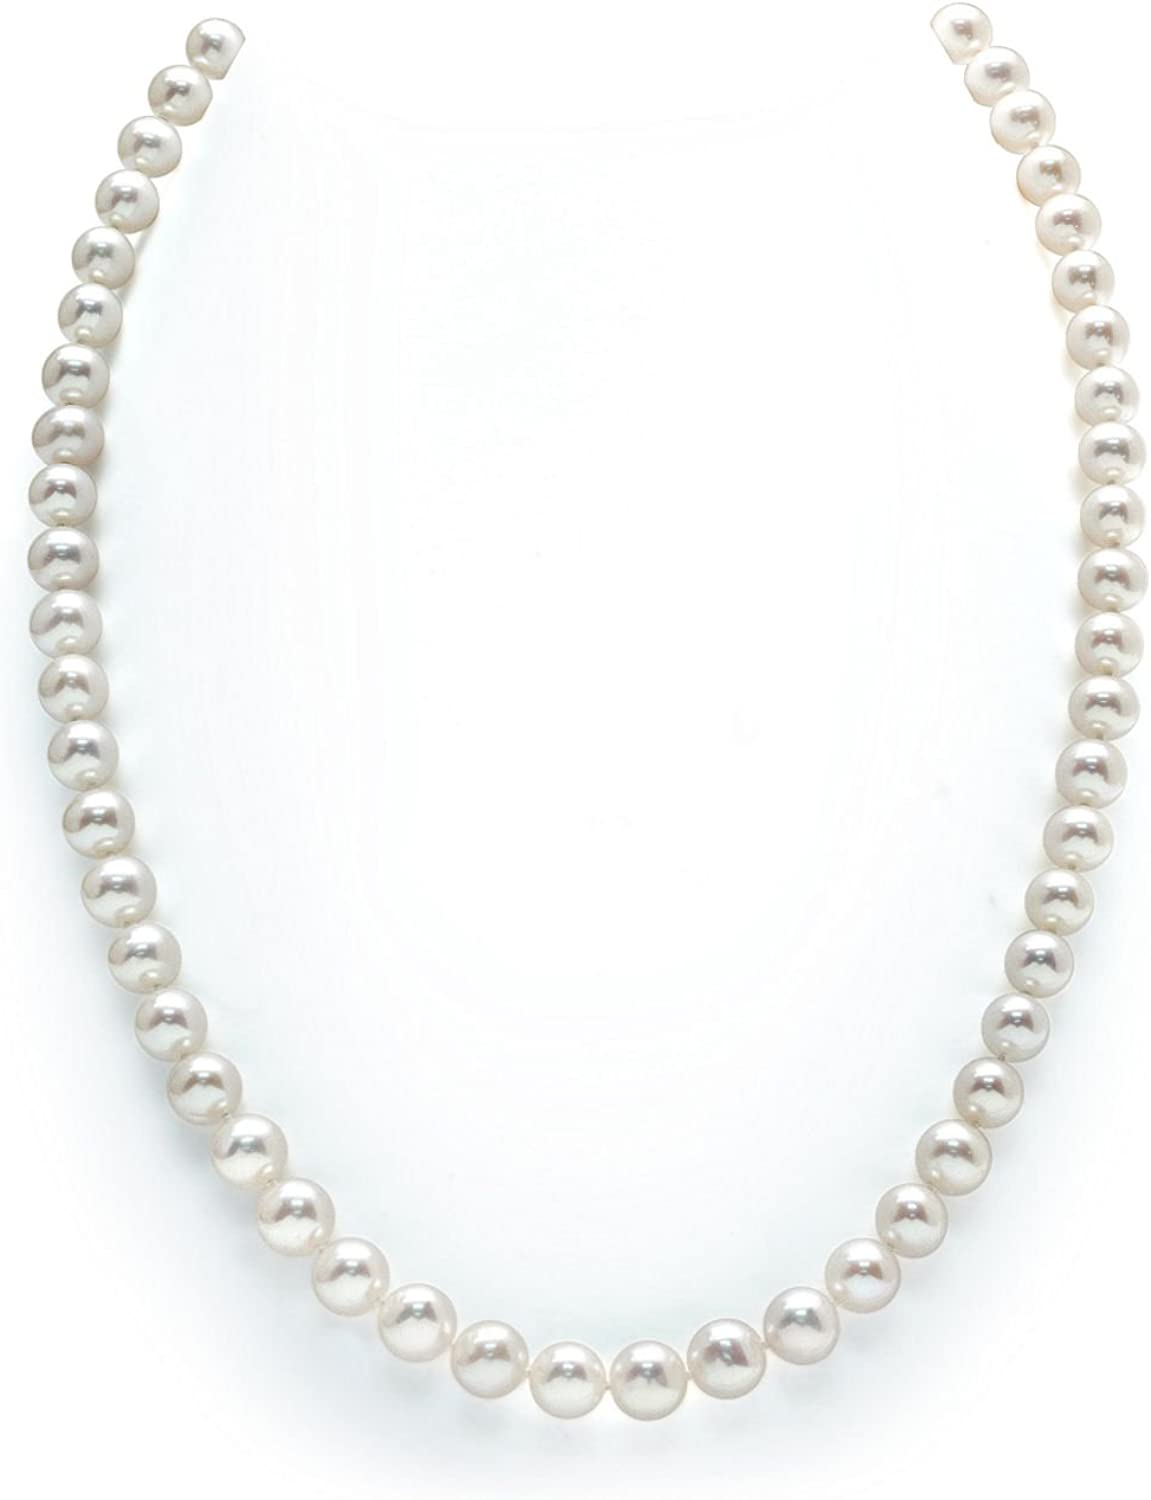 THE PEARL SOURCE 14K Gold AAAA Quality Round White Freshwater Cultured Pearl Necklace for Women in 18